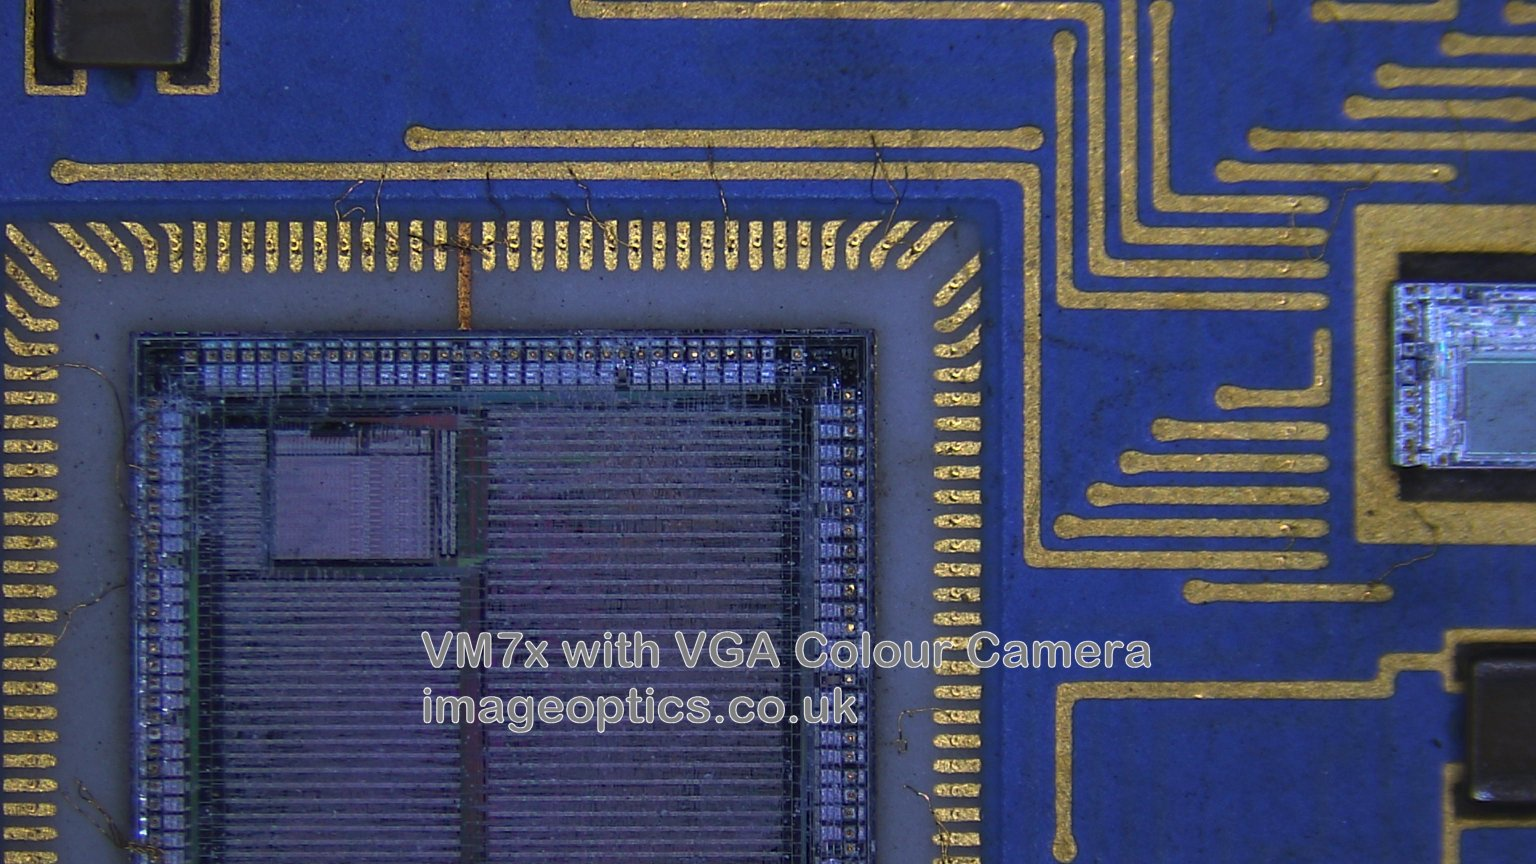 Example of image capture with VGA camera